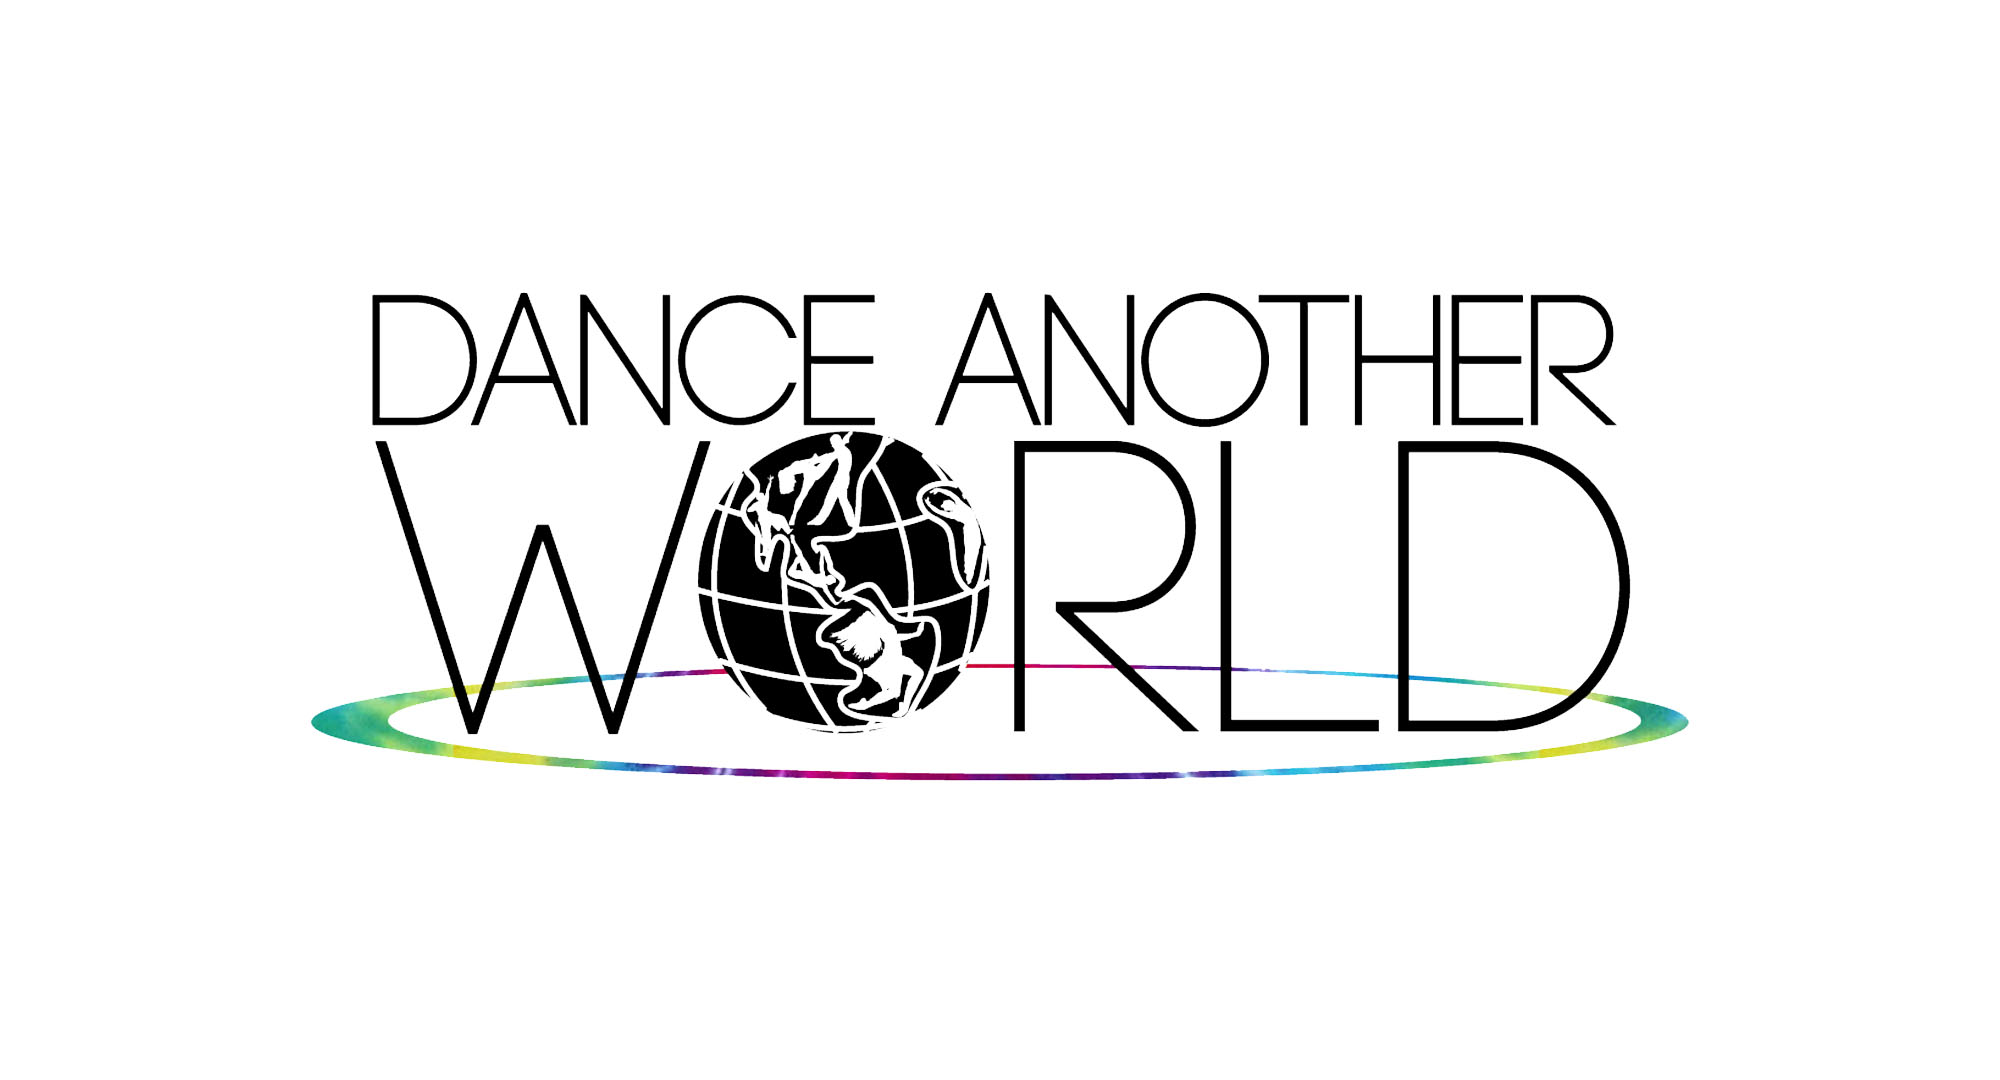 Dance-another-world.jpg